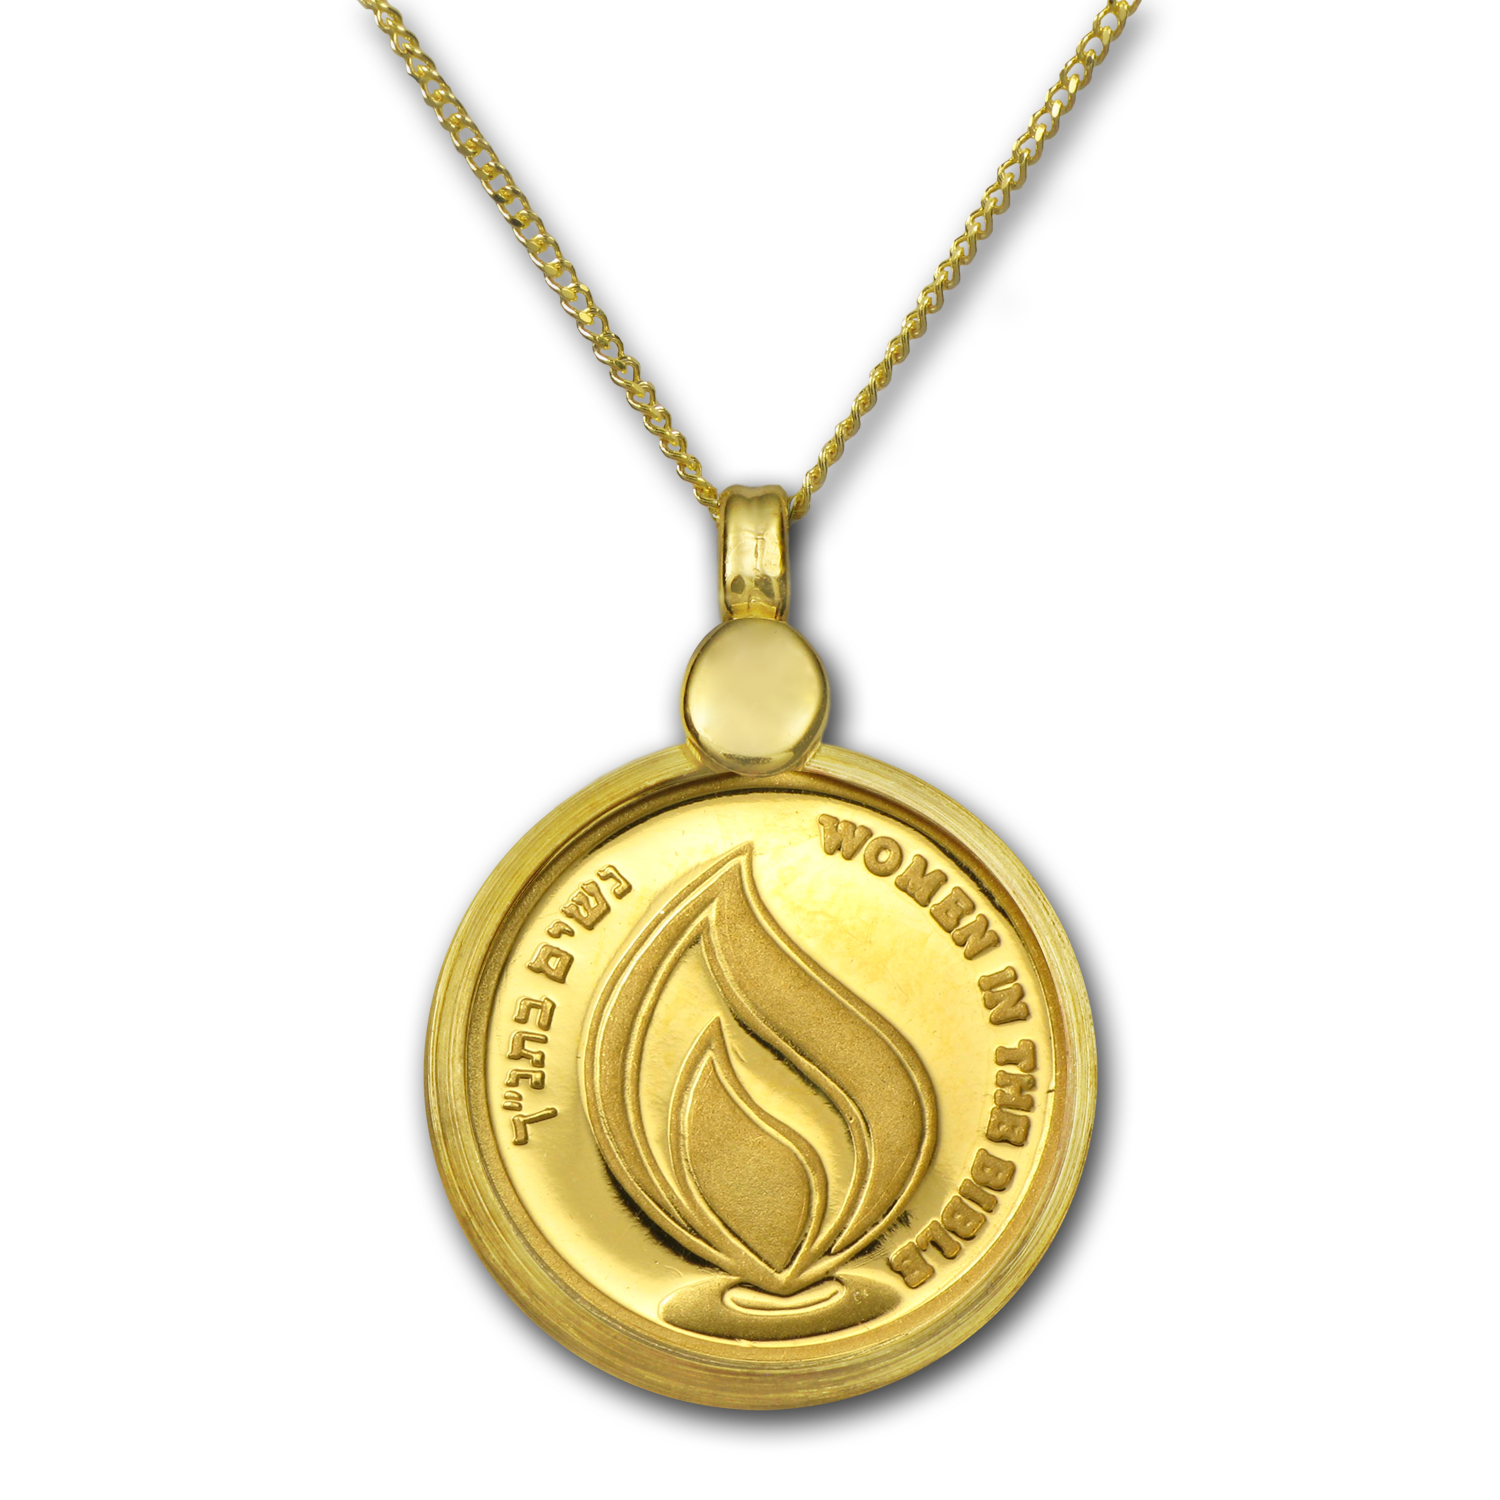 Israel Rebecca Gold Medal Necklace - AGW 0.0729